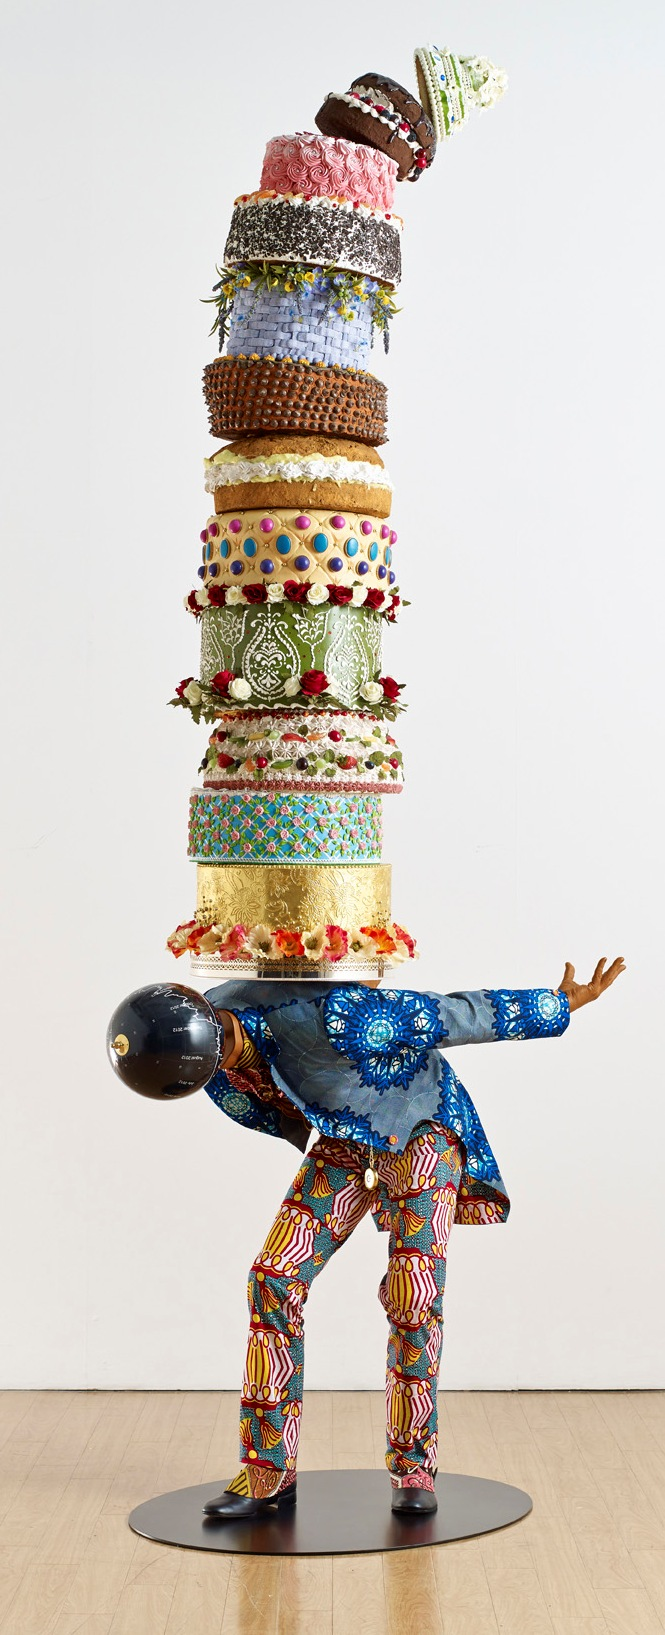 Cake Man (Royal Academy of Arts, Londres)